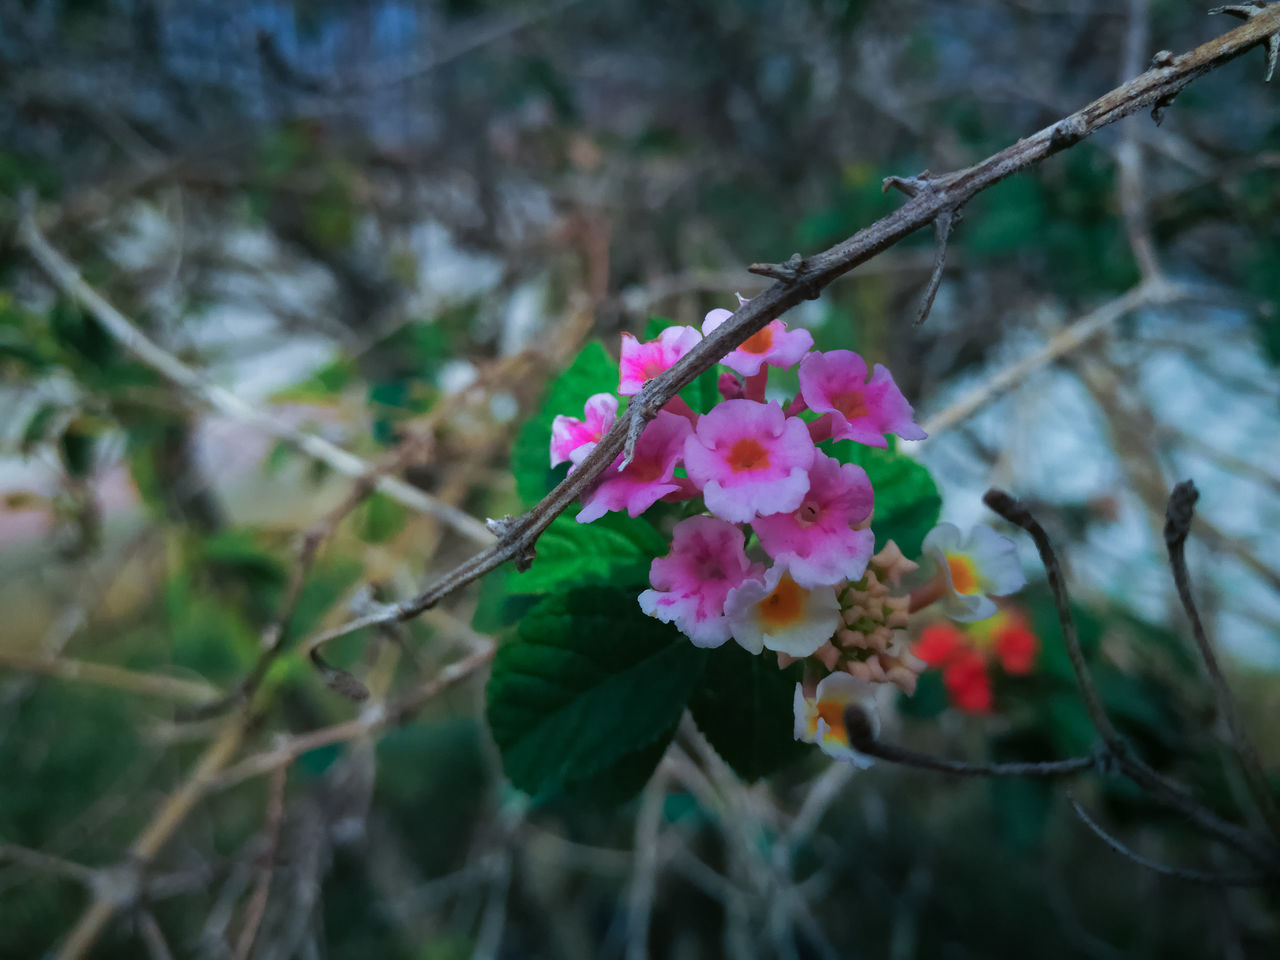 flower, nature, growth, fragility, petal, pink color, beauty in nature, plant, freshness, flower head, outdoors, no people, focus on foreground, day, blooming, close-up